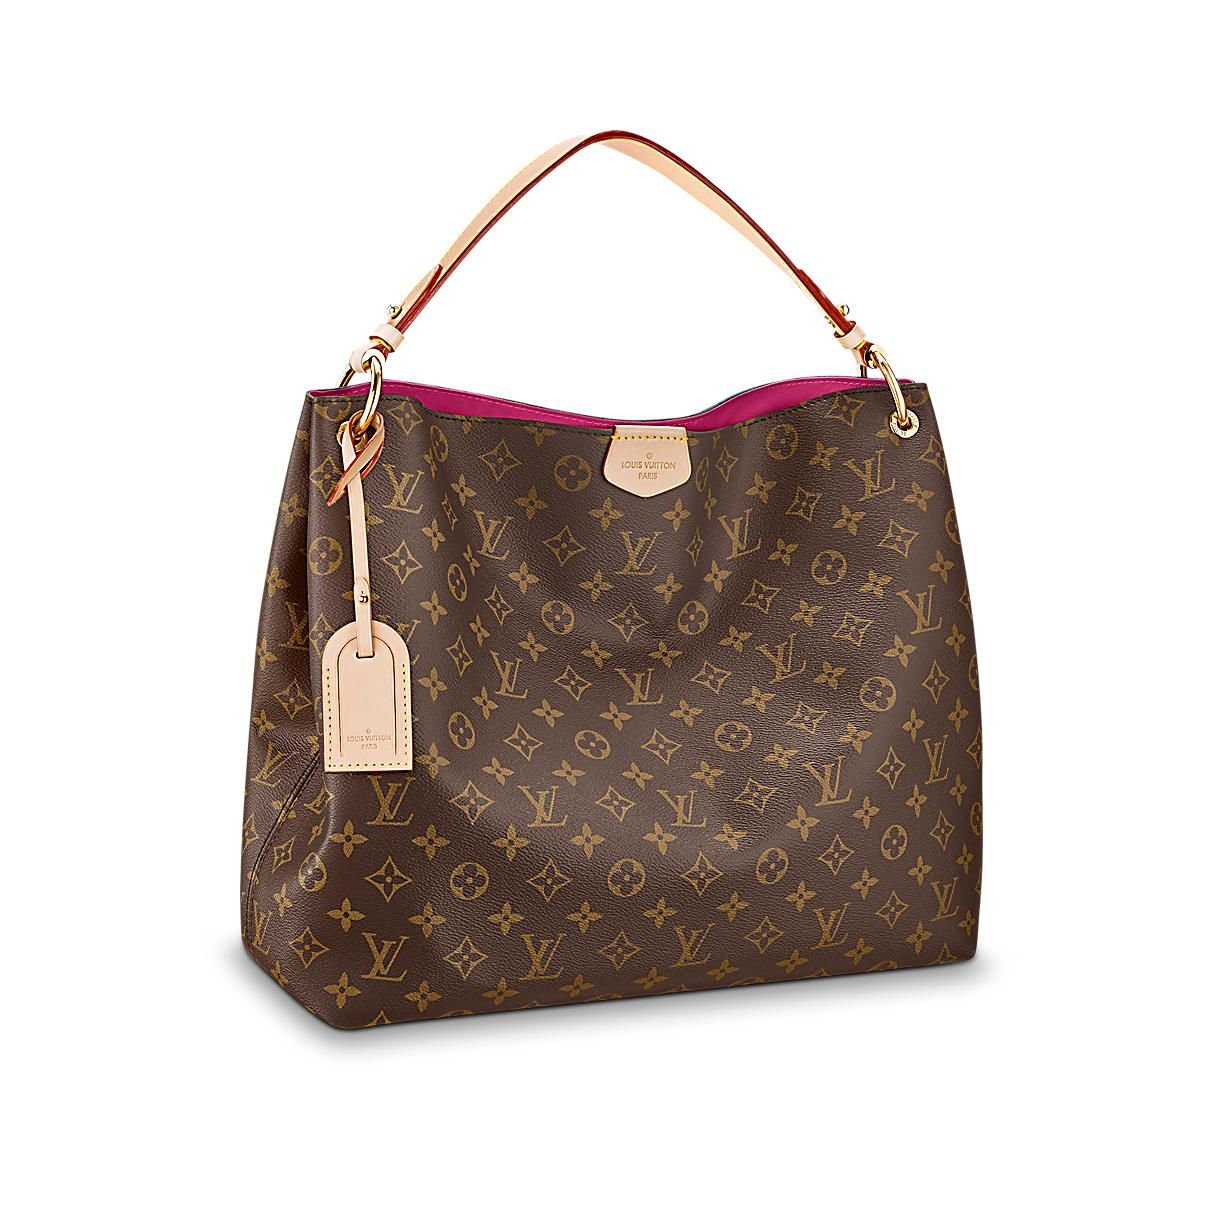 d54be0707e80 GRACEFUL MM Monogram in Women s Handbags collections by Louis Vuitton